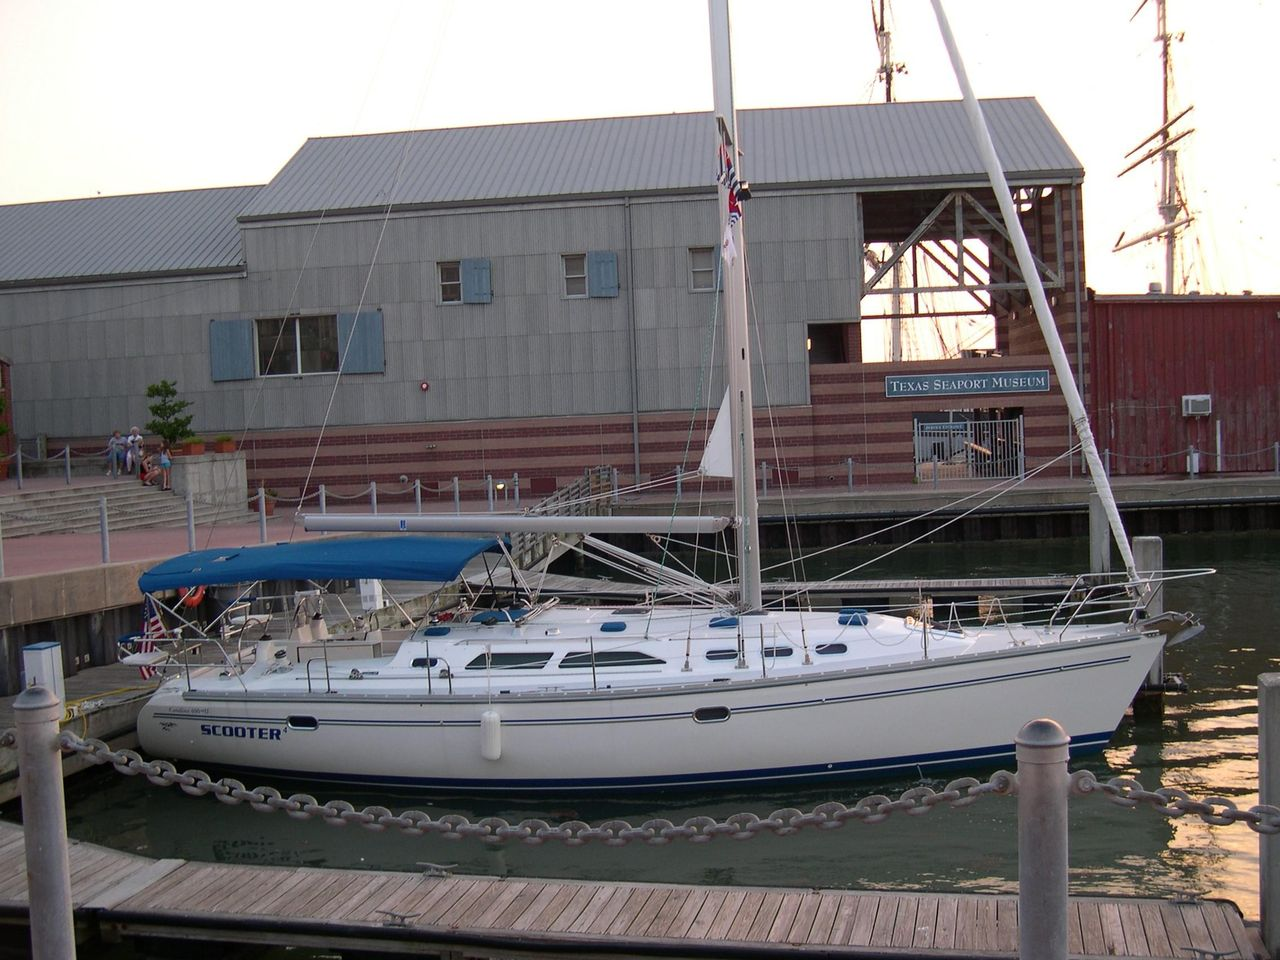 2004 Used Catalina 400 MKII Cruiser Sailboat For Sale